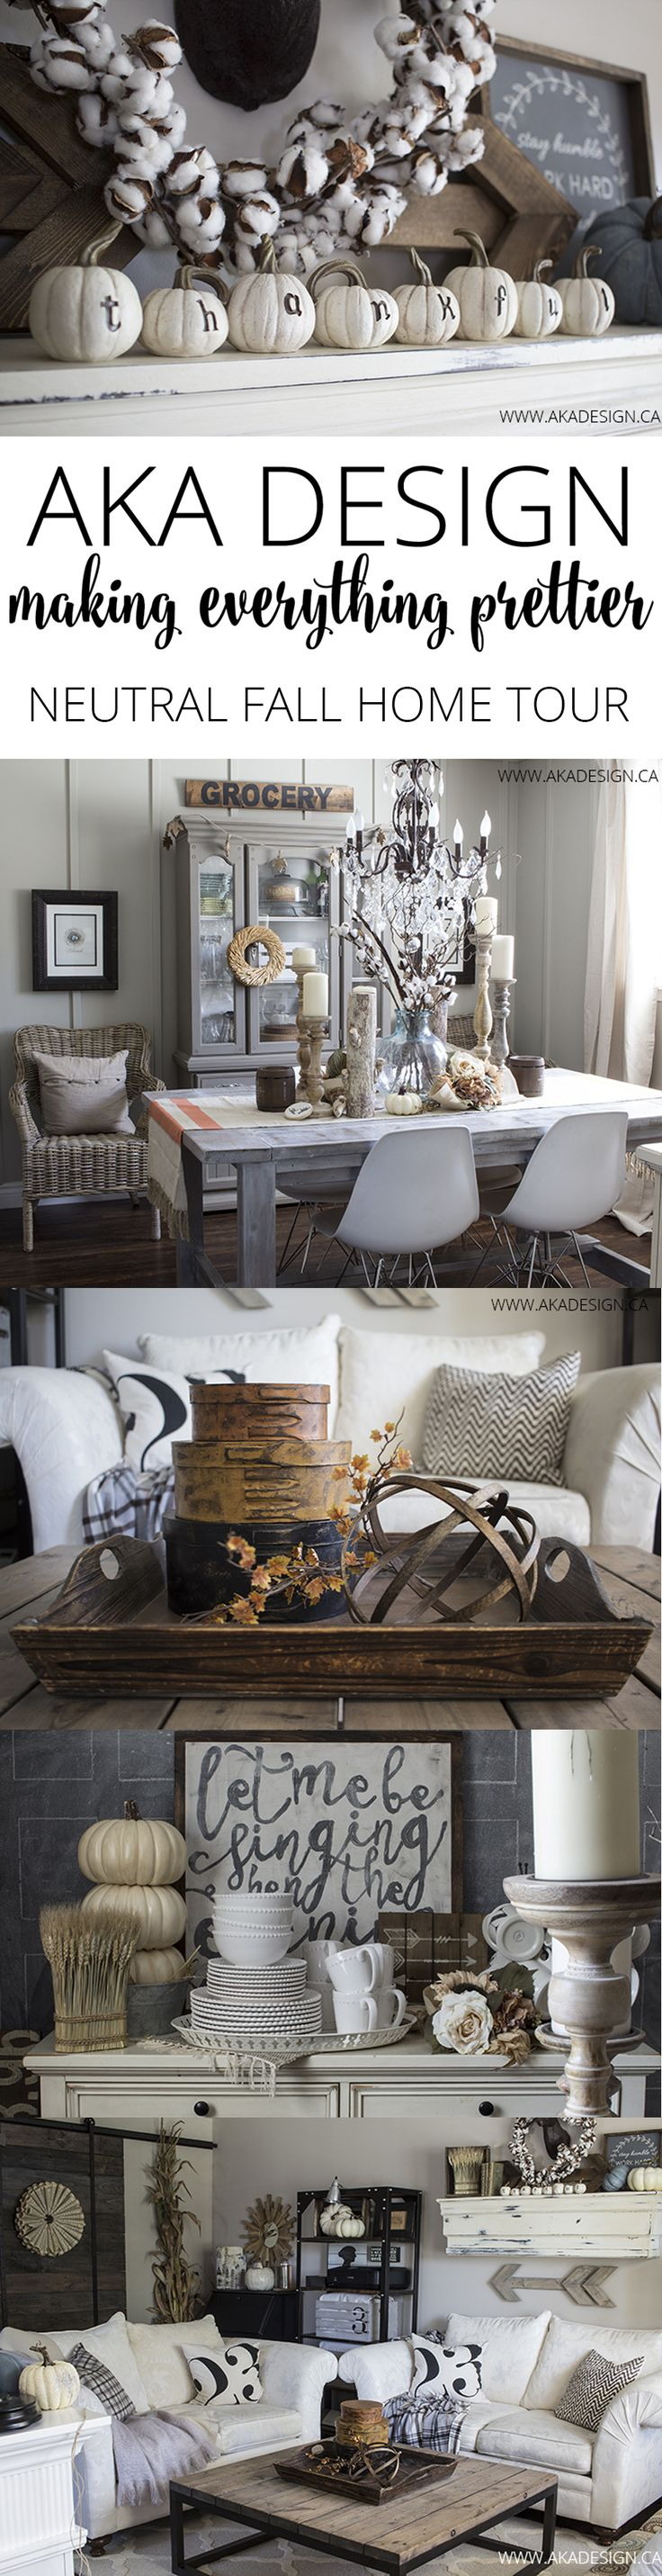 AKA Design Neutral Fall Home Tour | beautiful neutral fall decor | farmhouse country rustic chic style | fall and autumn home decor ideas and inspiration for DIY craft